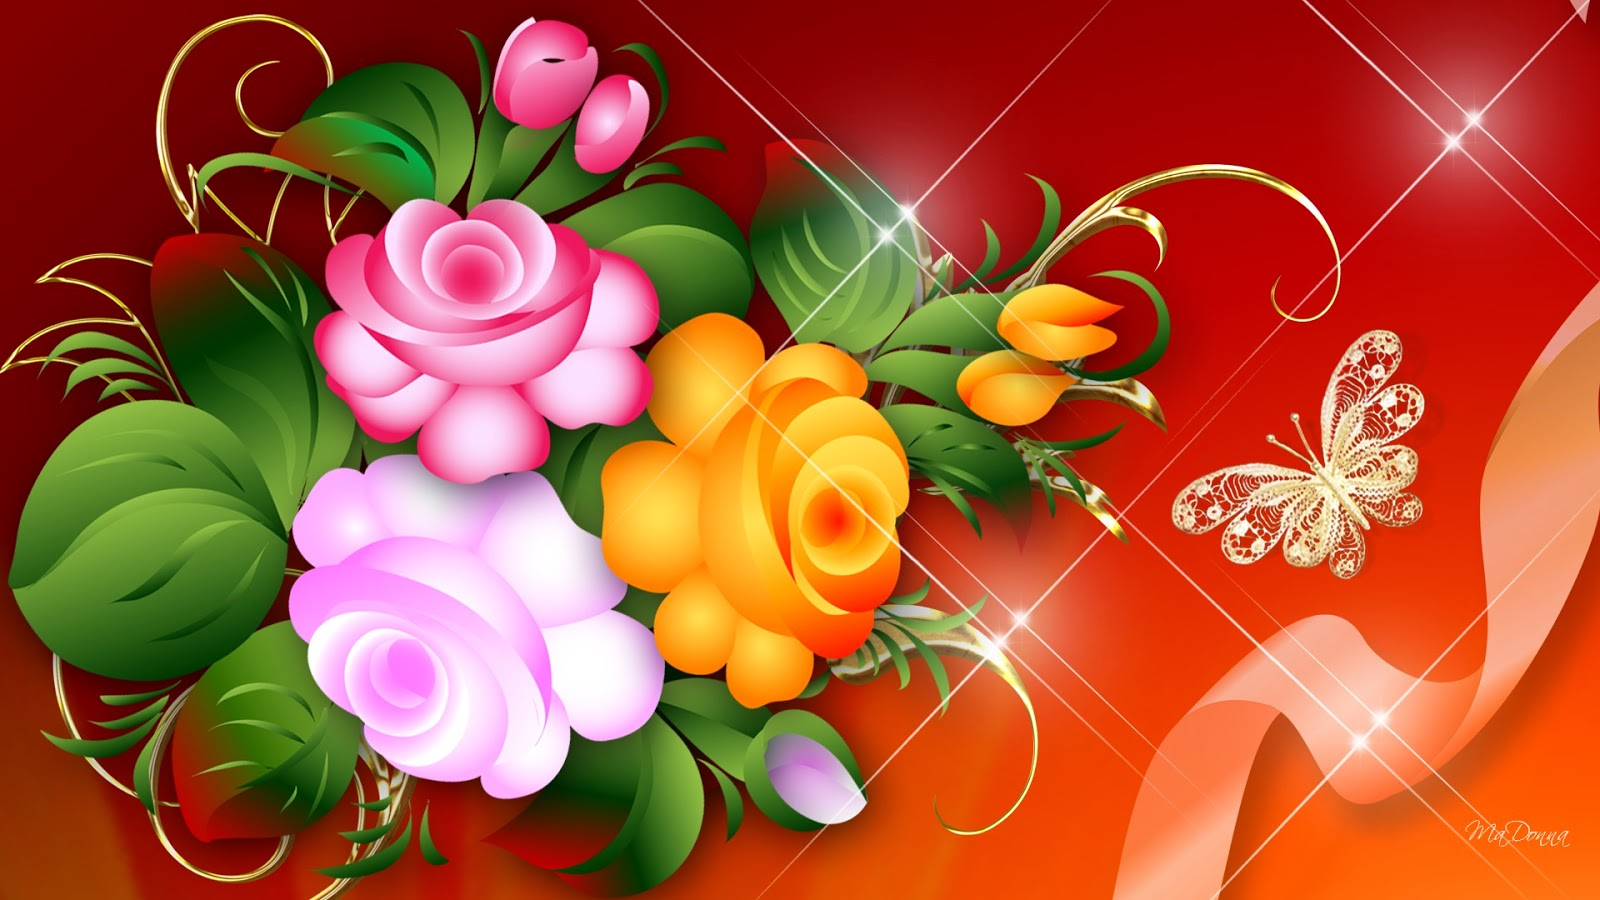 Bright Flower Wallpaper Beautiful Desktop Wallpapers 2014